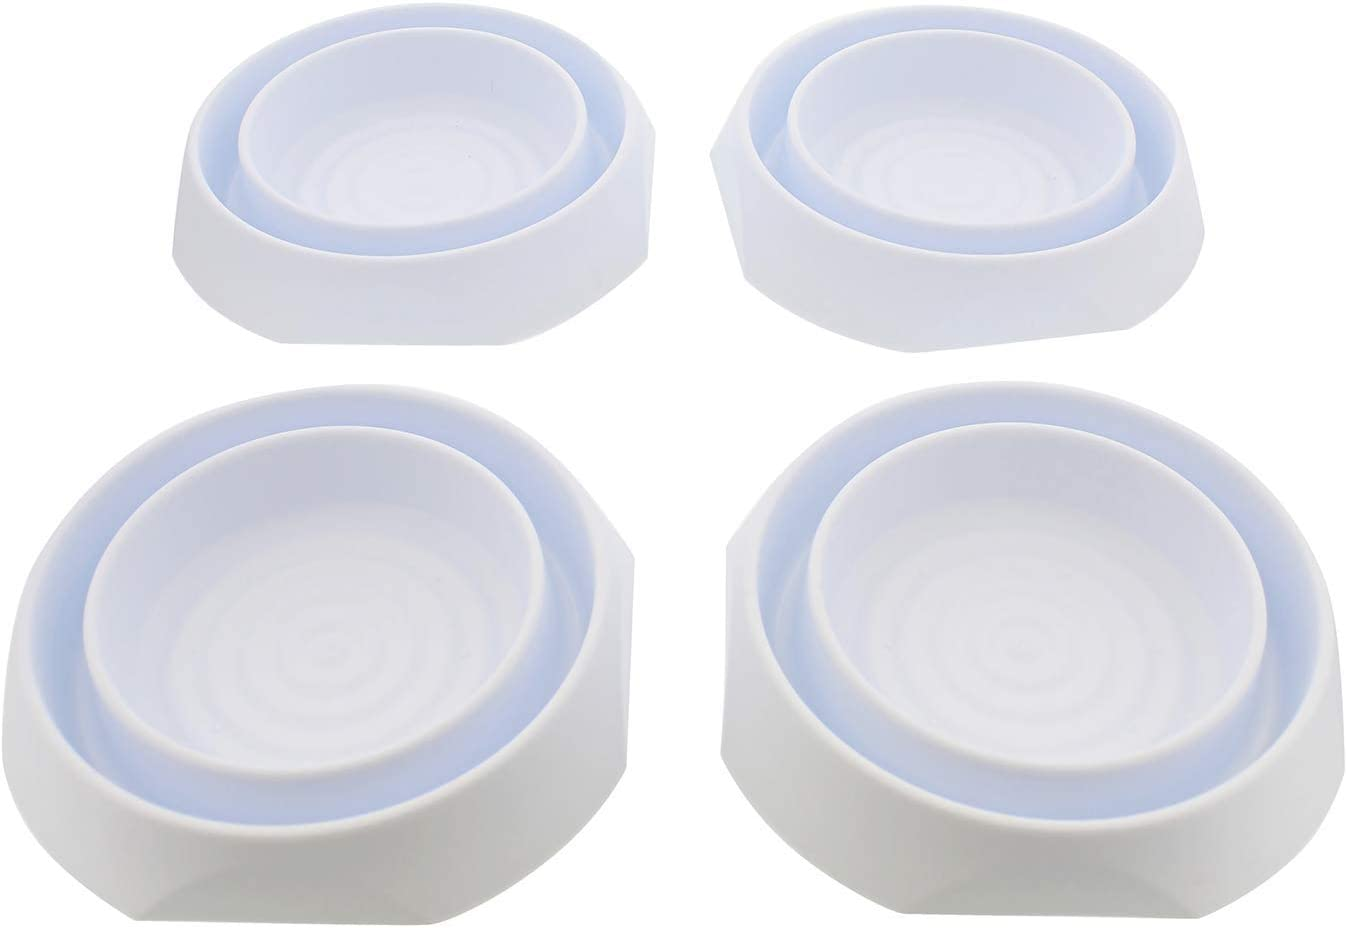 BUGSAWAY Bed Leg Protection 4 Pack White Cups Premium Night Killers Make Sure You Have Good Dreams For Family And Hotel